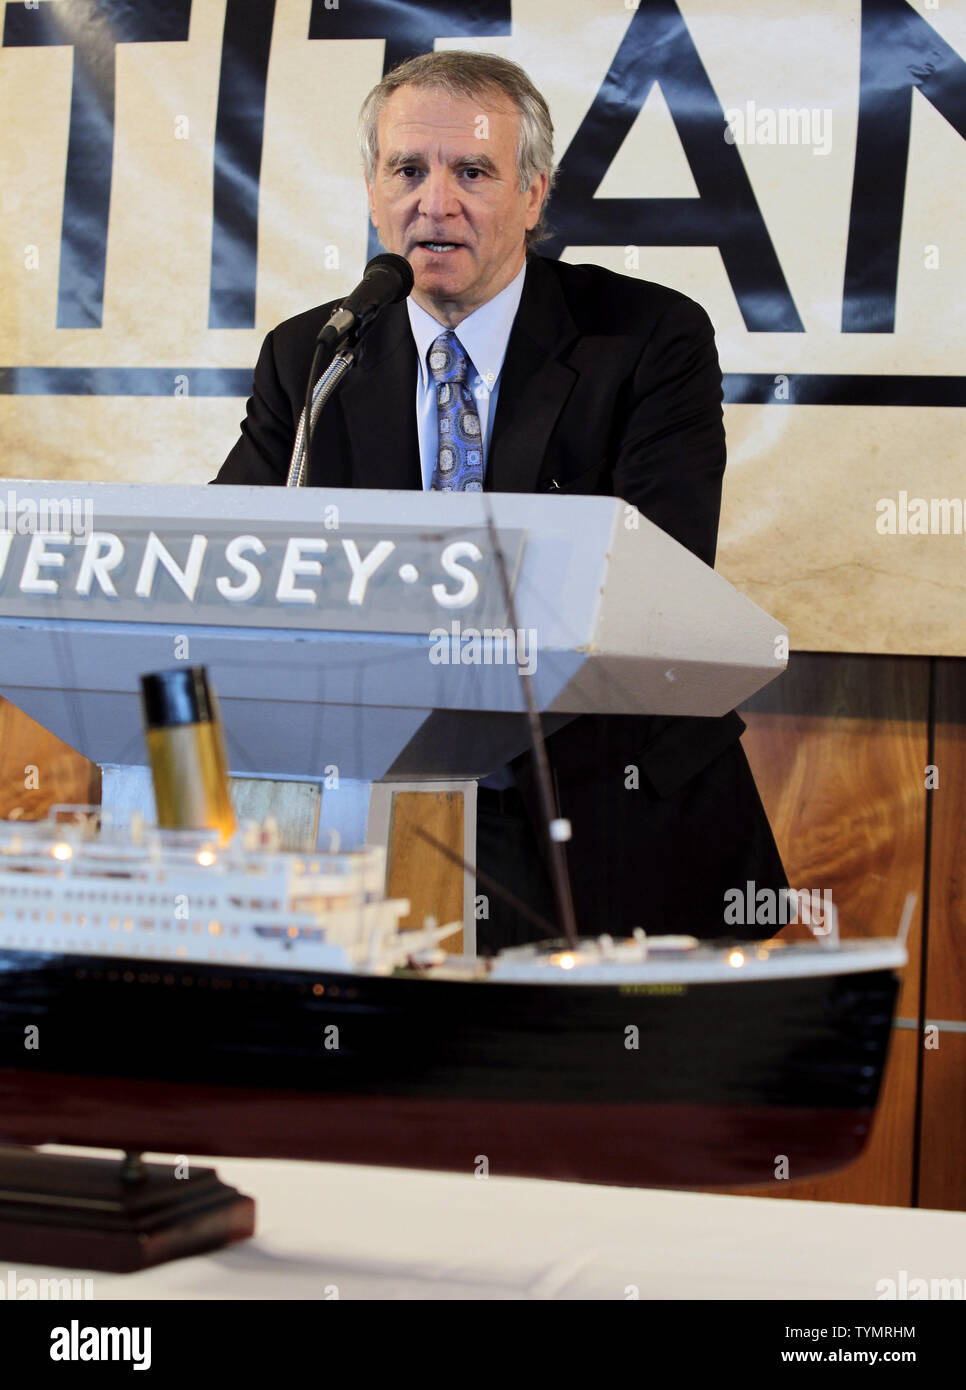 P.H. Nargeolet speaks about artifacts recovered from the wreck site of the RMS Titanic that are to be auctioned at the Intrepid Sea, Air & Space Museum in New York City on January 5, 2012. The auction will take place on April 11, 2012 on the 100 year anniversary of the ships maiden voyage and will be sold as one single collection.    UPI/John Angelillo - Stock Image